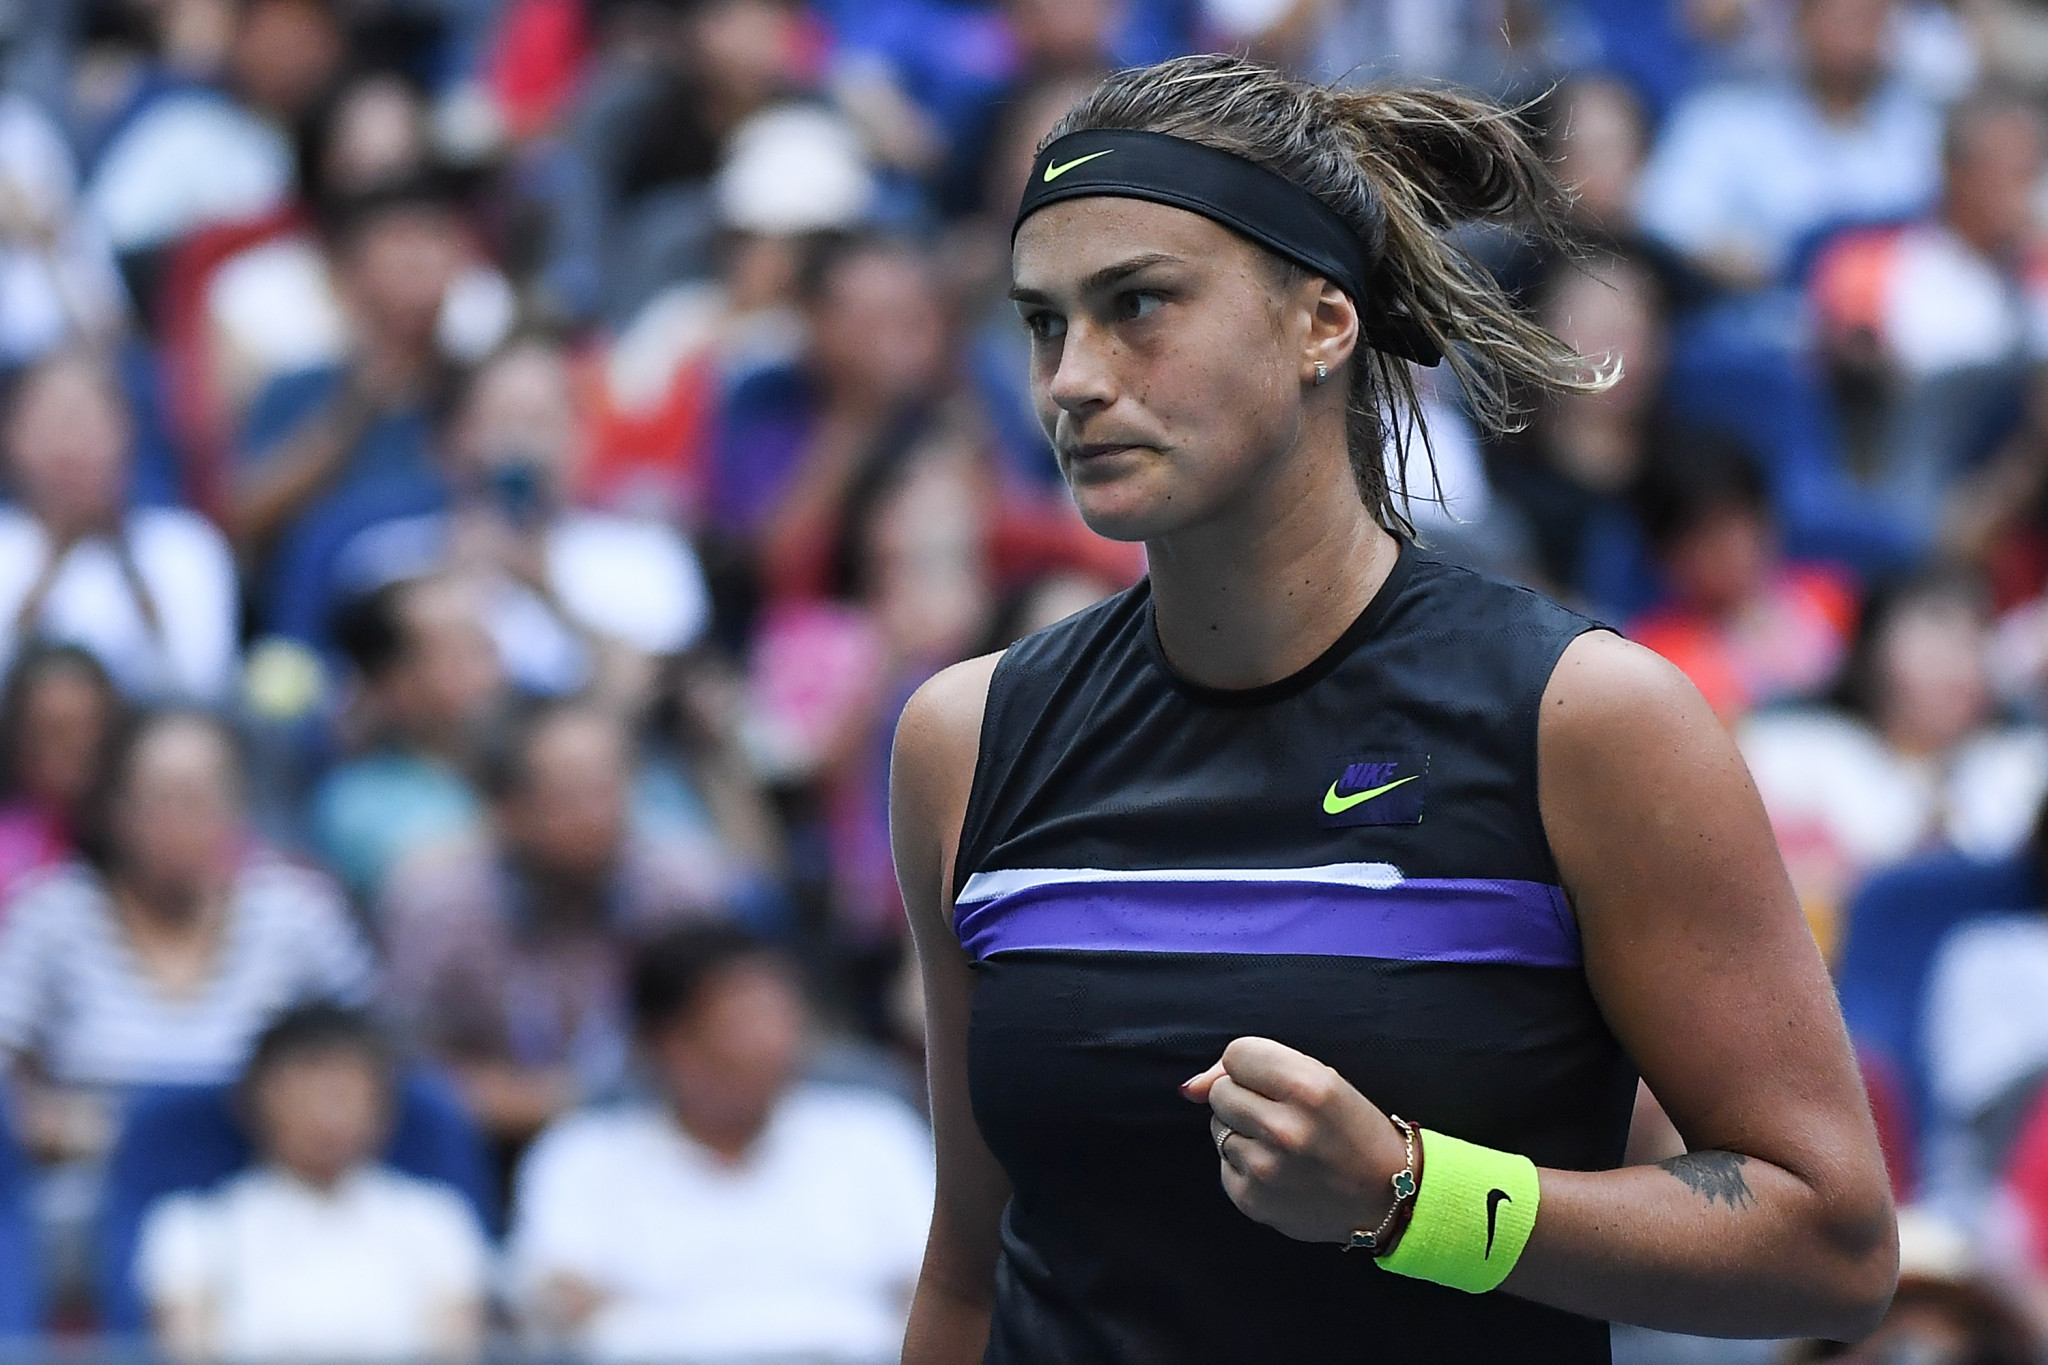 Sabalenka defends Wuhan Open title with three-set win over Riske